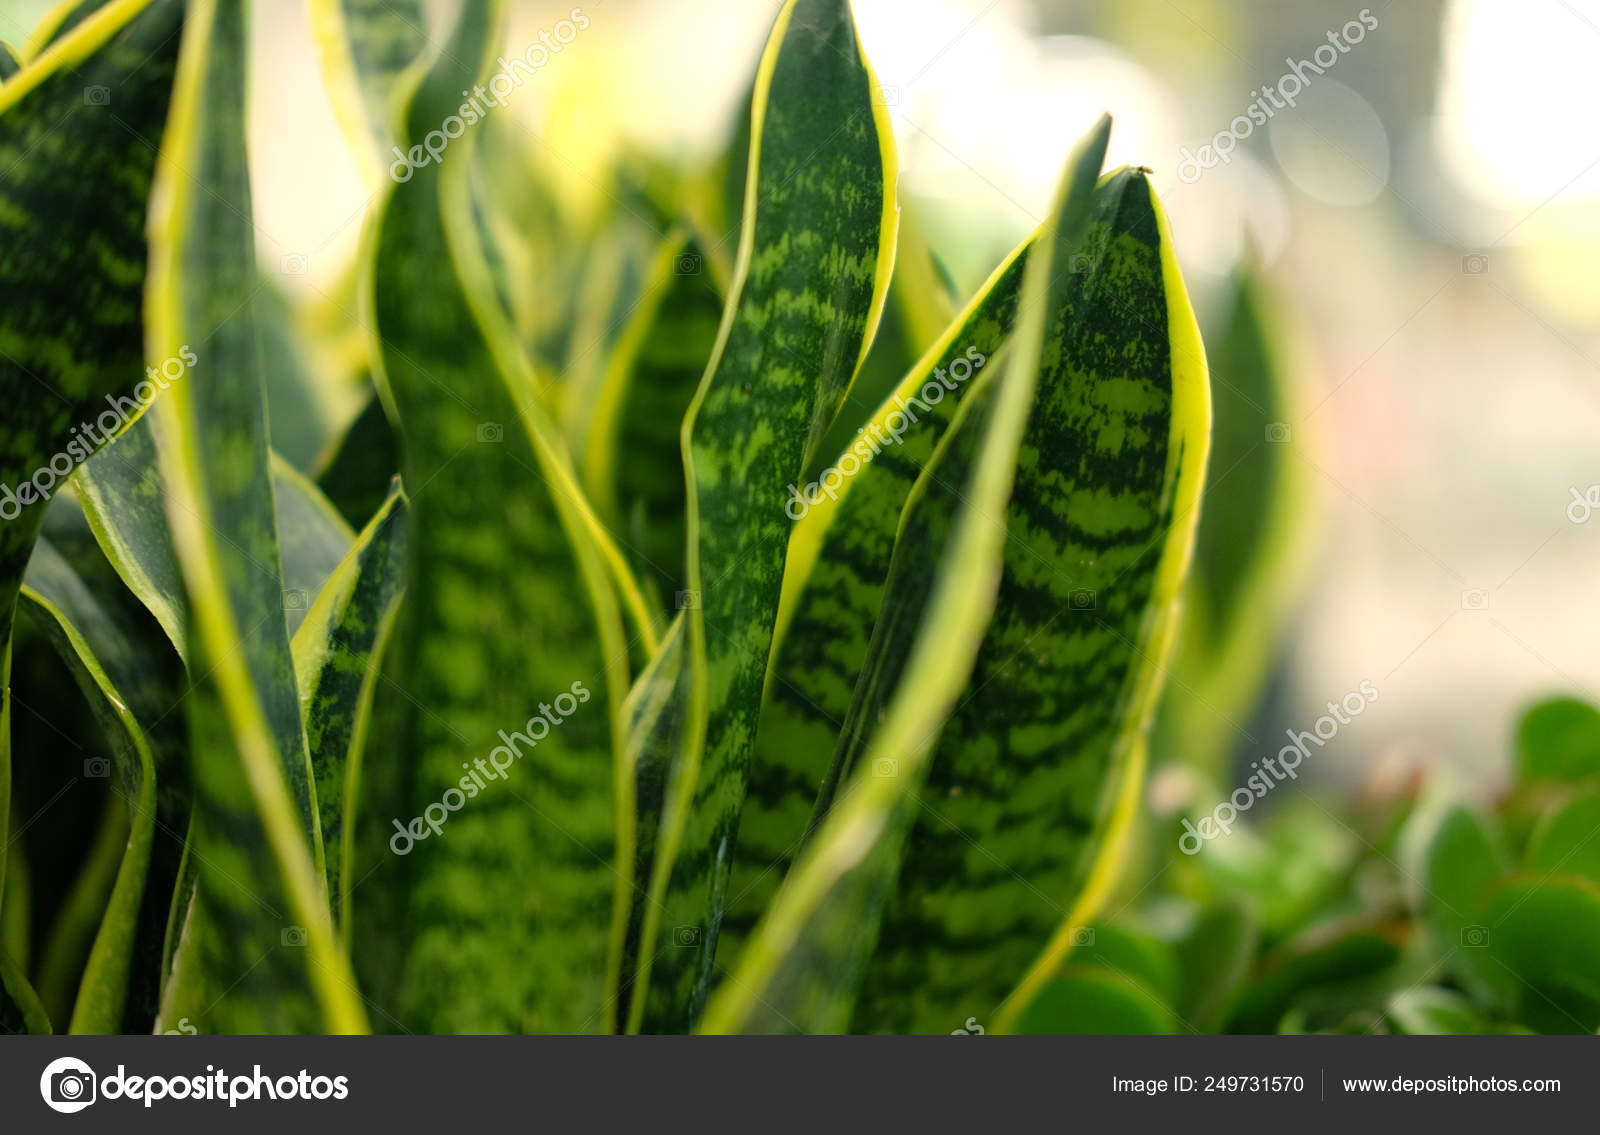 Green Plants In Pots In Garden Store Spring Stock Photo Image By C Juice Team 249731570